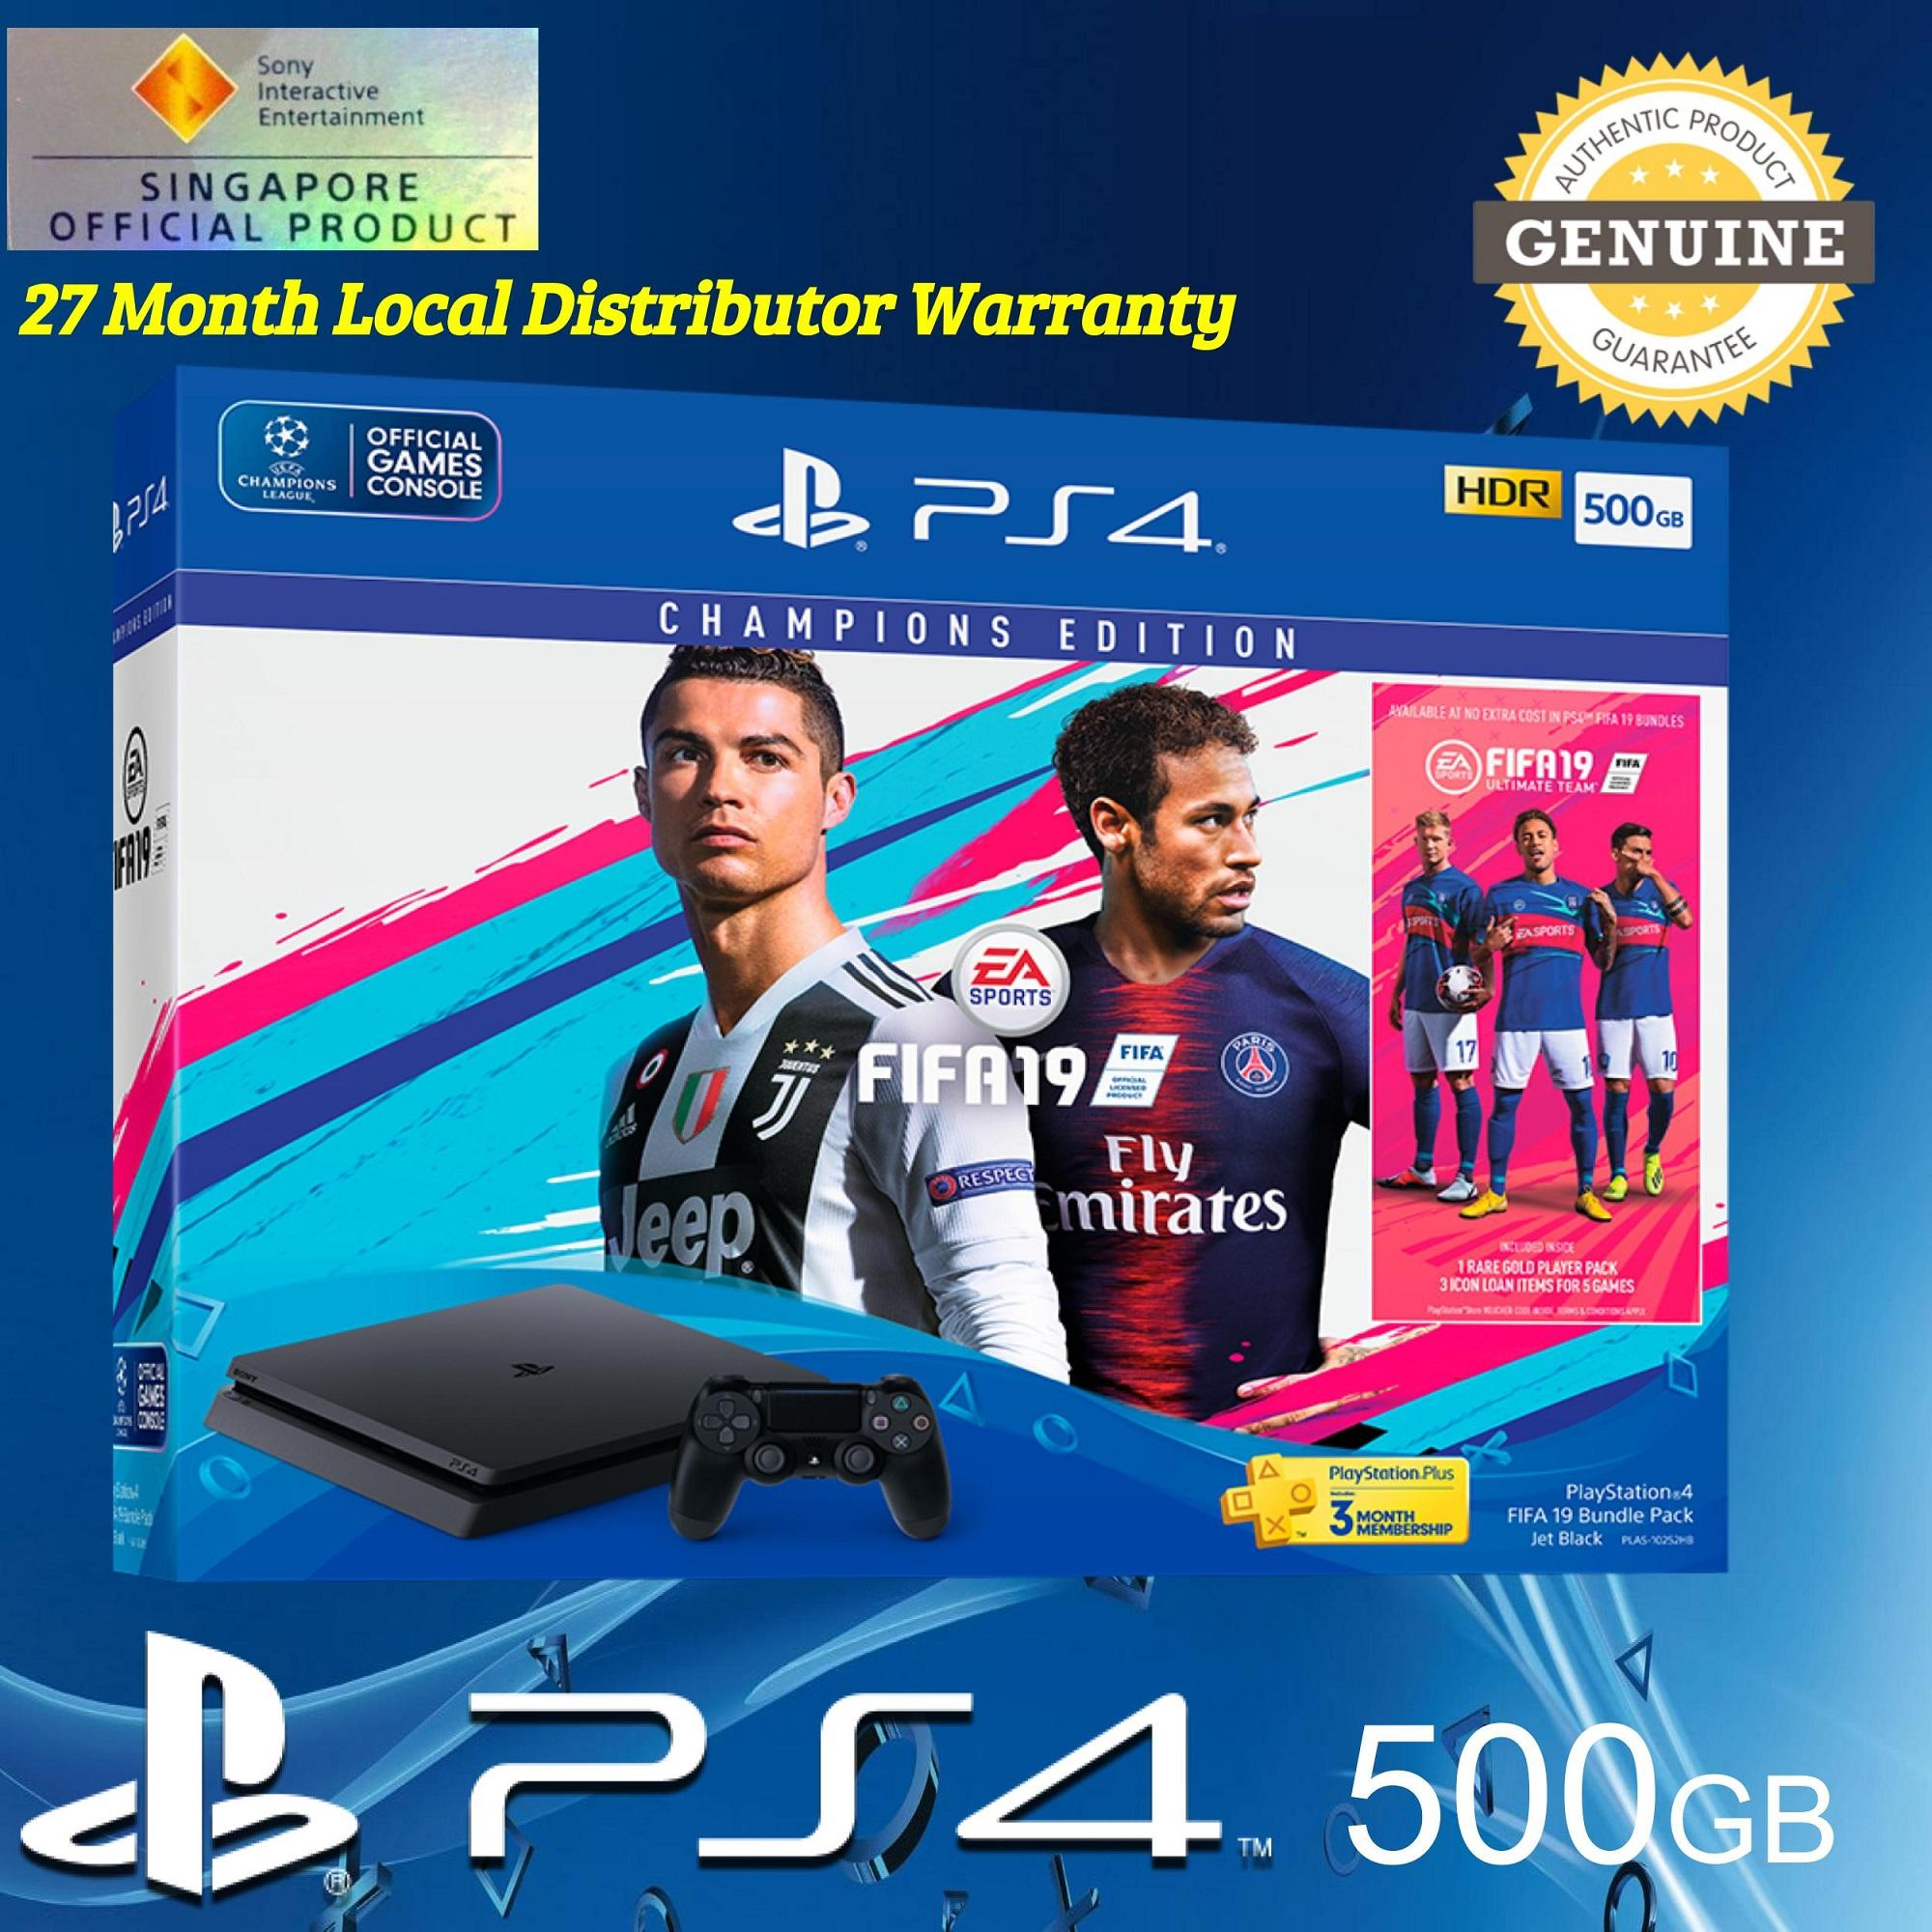 Destiny Ps4 Console Bundle Price In Singapore Sony Playstation 4 Slim 500gb Hits Jet Black Region 3 Fifa 19 With Months Ps Plus And 27 Warranty